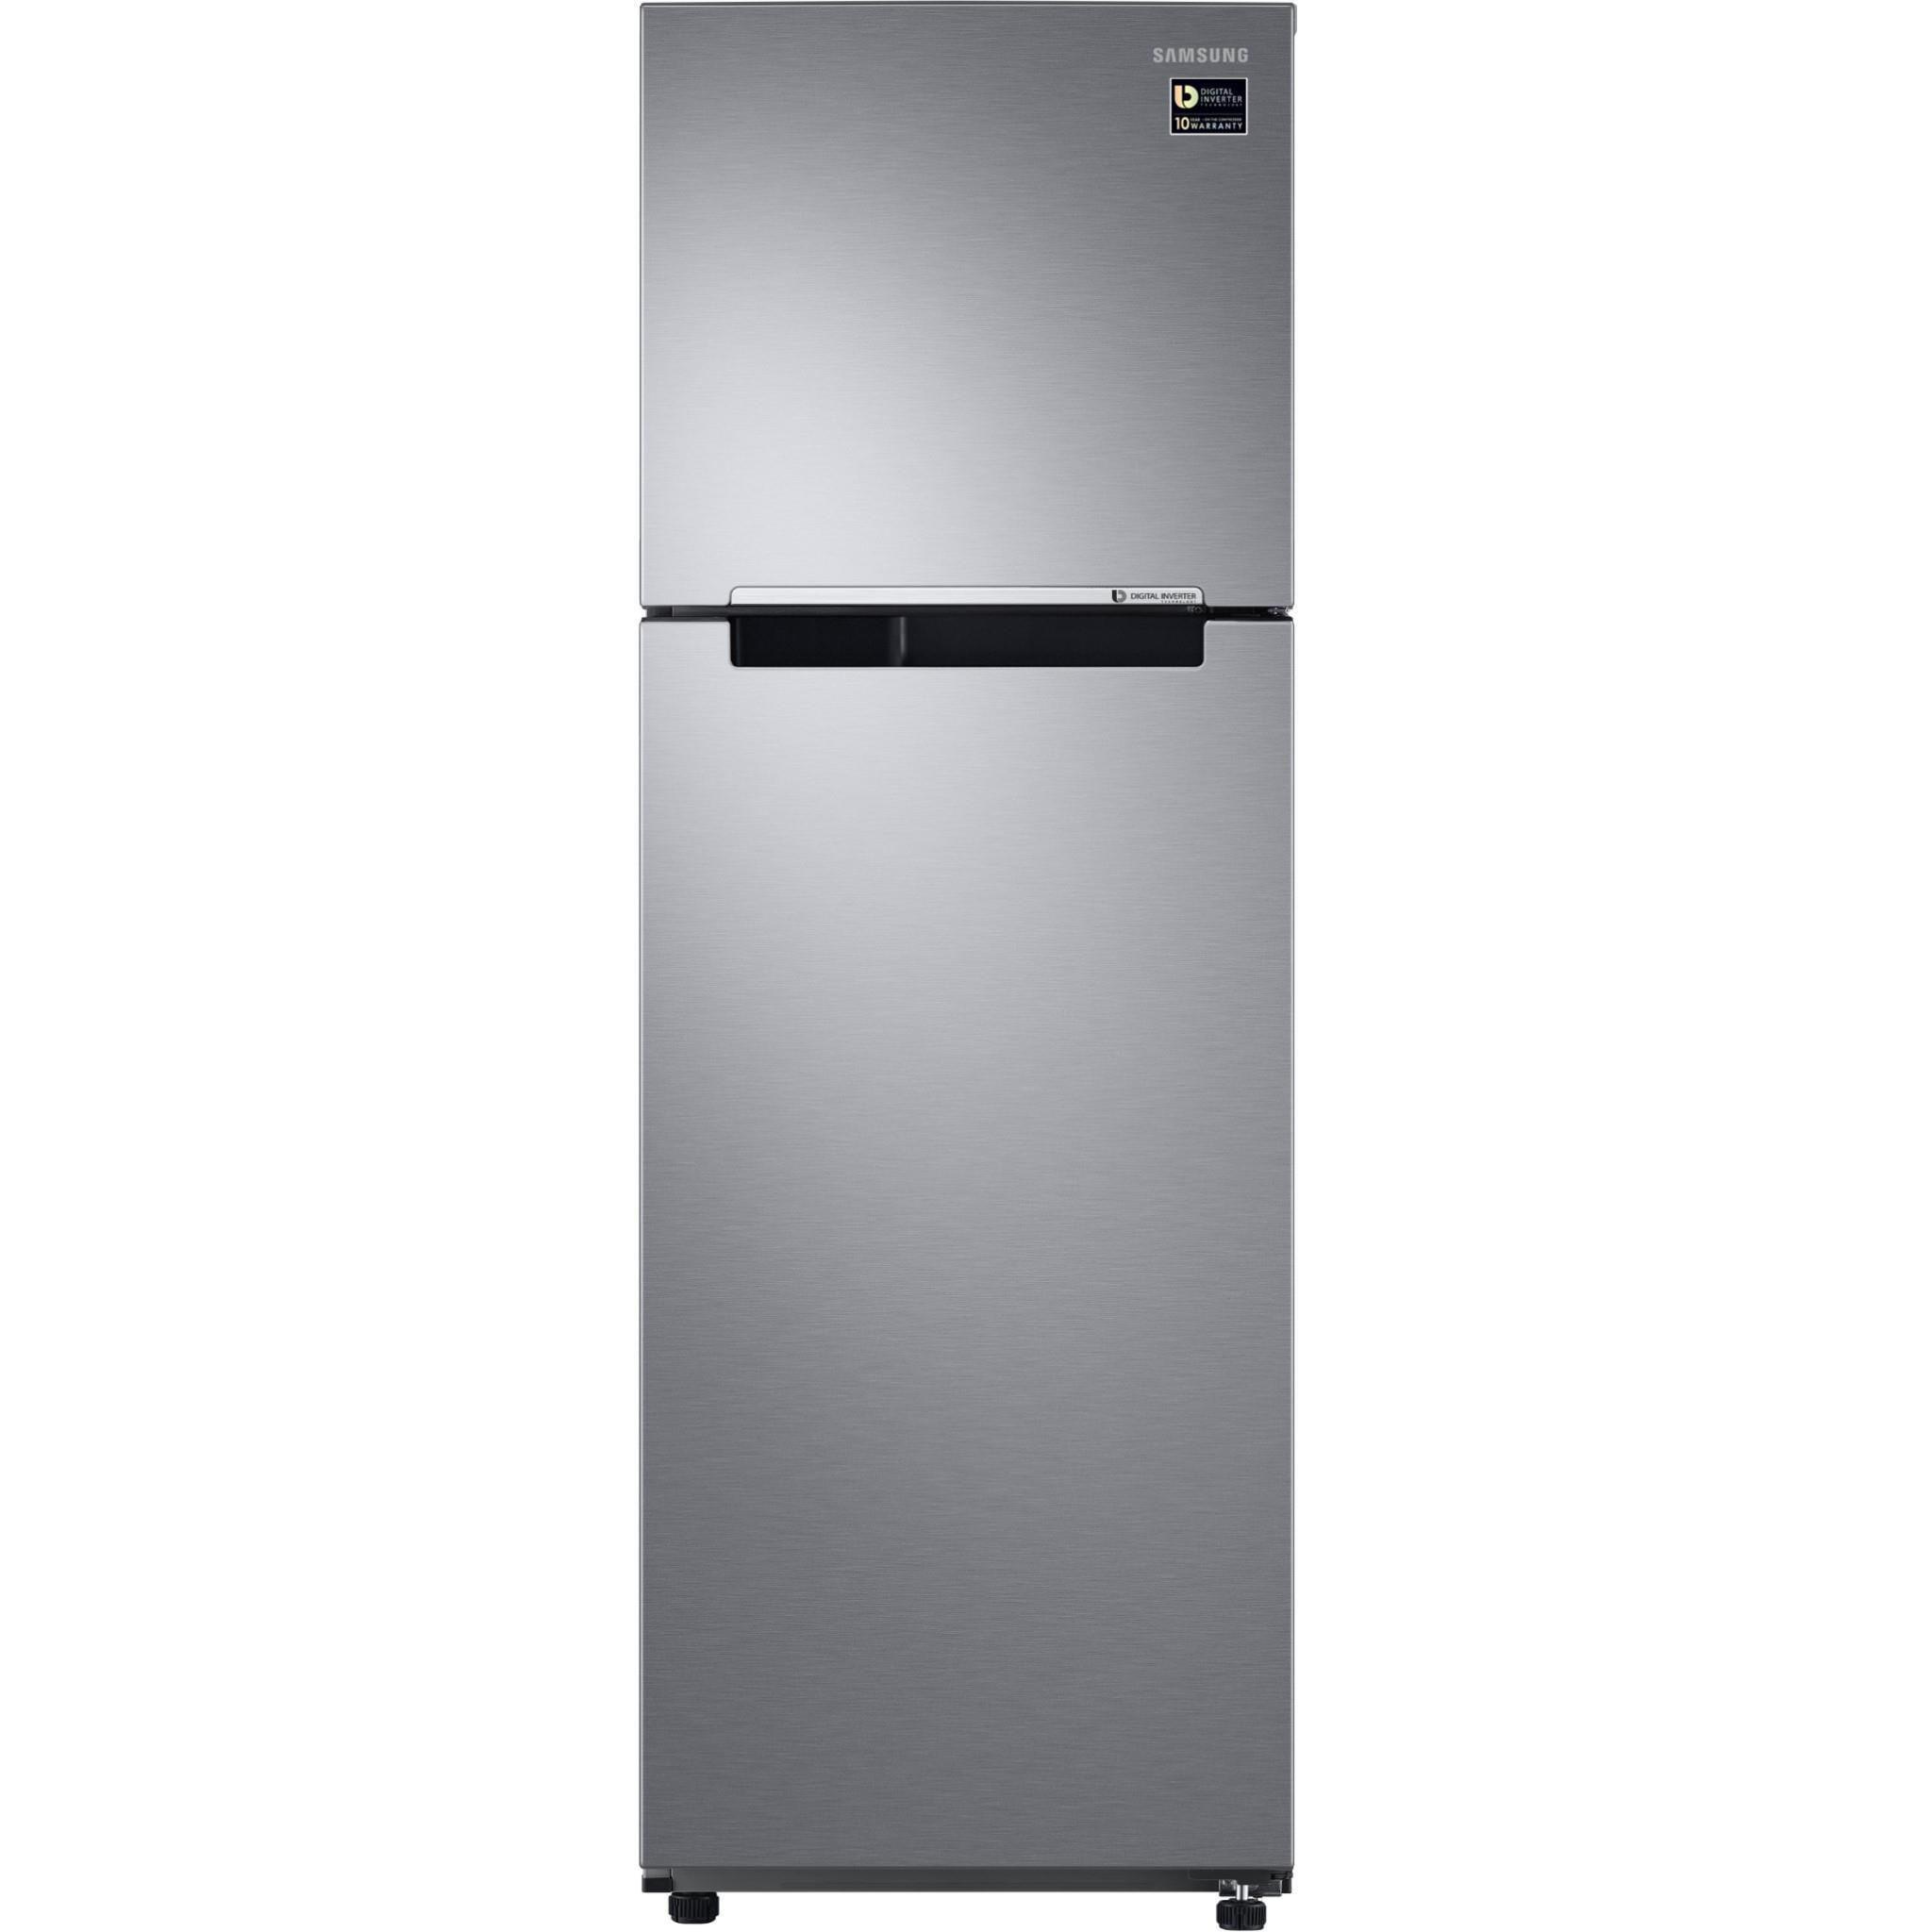 Samsung SR270MLS 270L Top Mount Fridge (S/Steel)